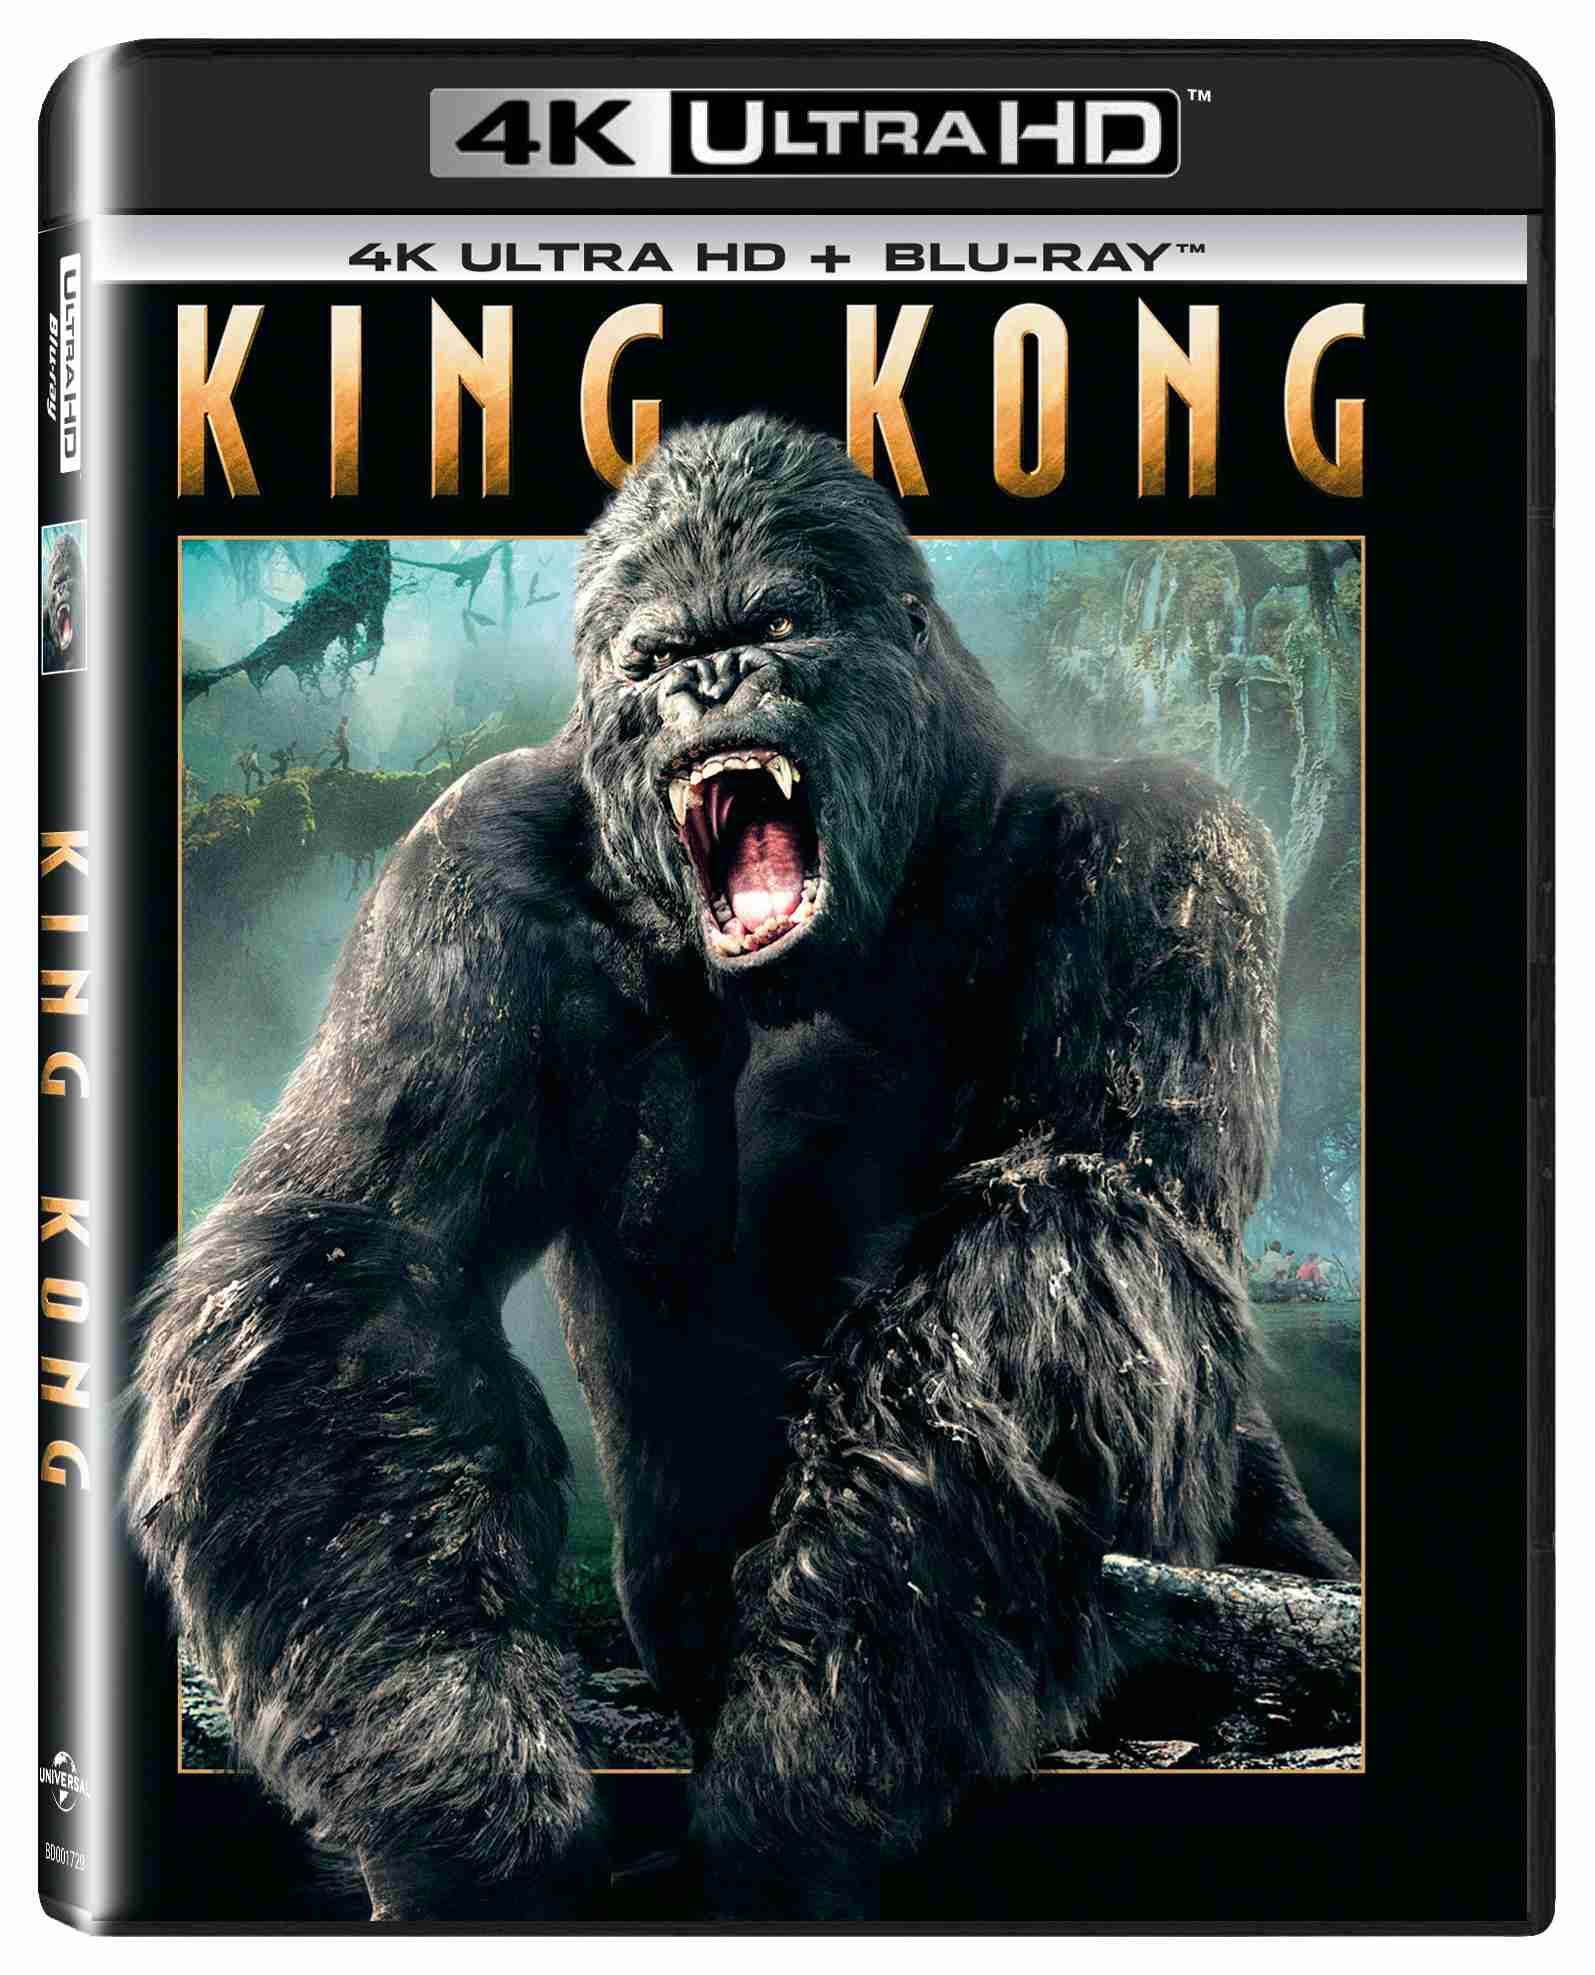 King Kong (4K Ultra HD) - UHD Blu-ray + Blu-ray (2 BD)